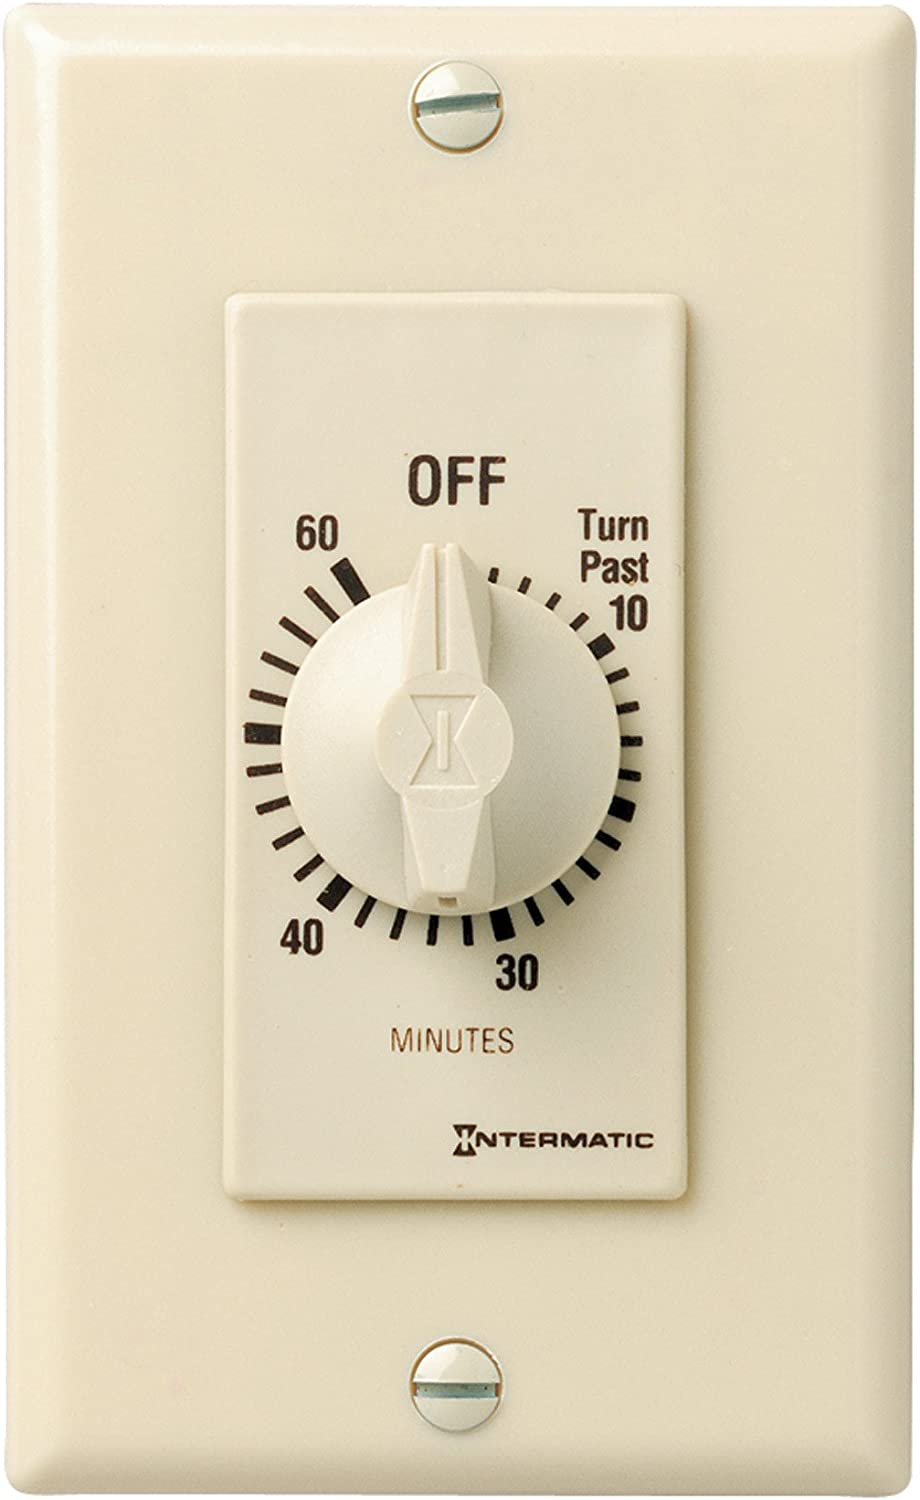 Intermatic FD460M 60-Minute Spring-Loaded Wall Timer for Lights and Fans, Ivory